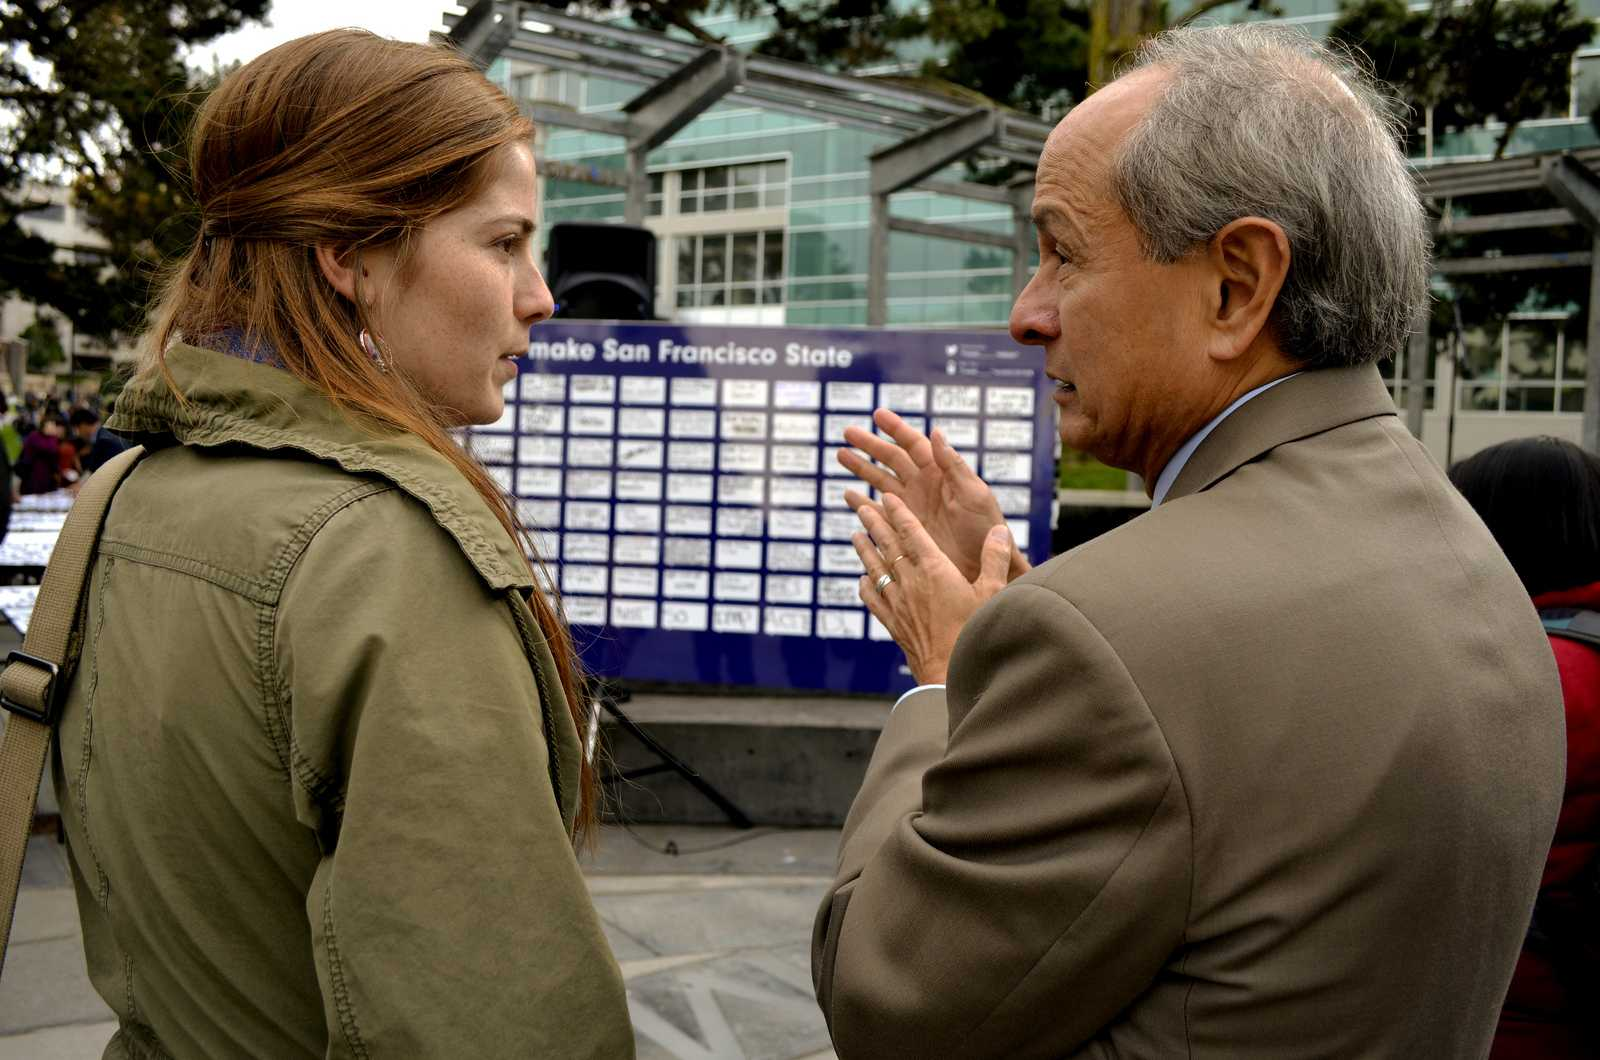 Kaitlyn Cornell (left) a 21-year-old drama and political science major, talks with President Leslie E. Wong in Malcolm X Plaza during the Strategic Plan event Monday, Nov. 18, 2013. Students expressed their ideas and shared what they thought would make SF State a better place. Photo by Amanda Peterson / Xpress